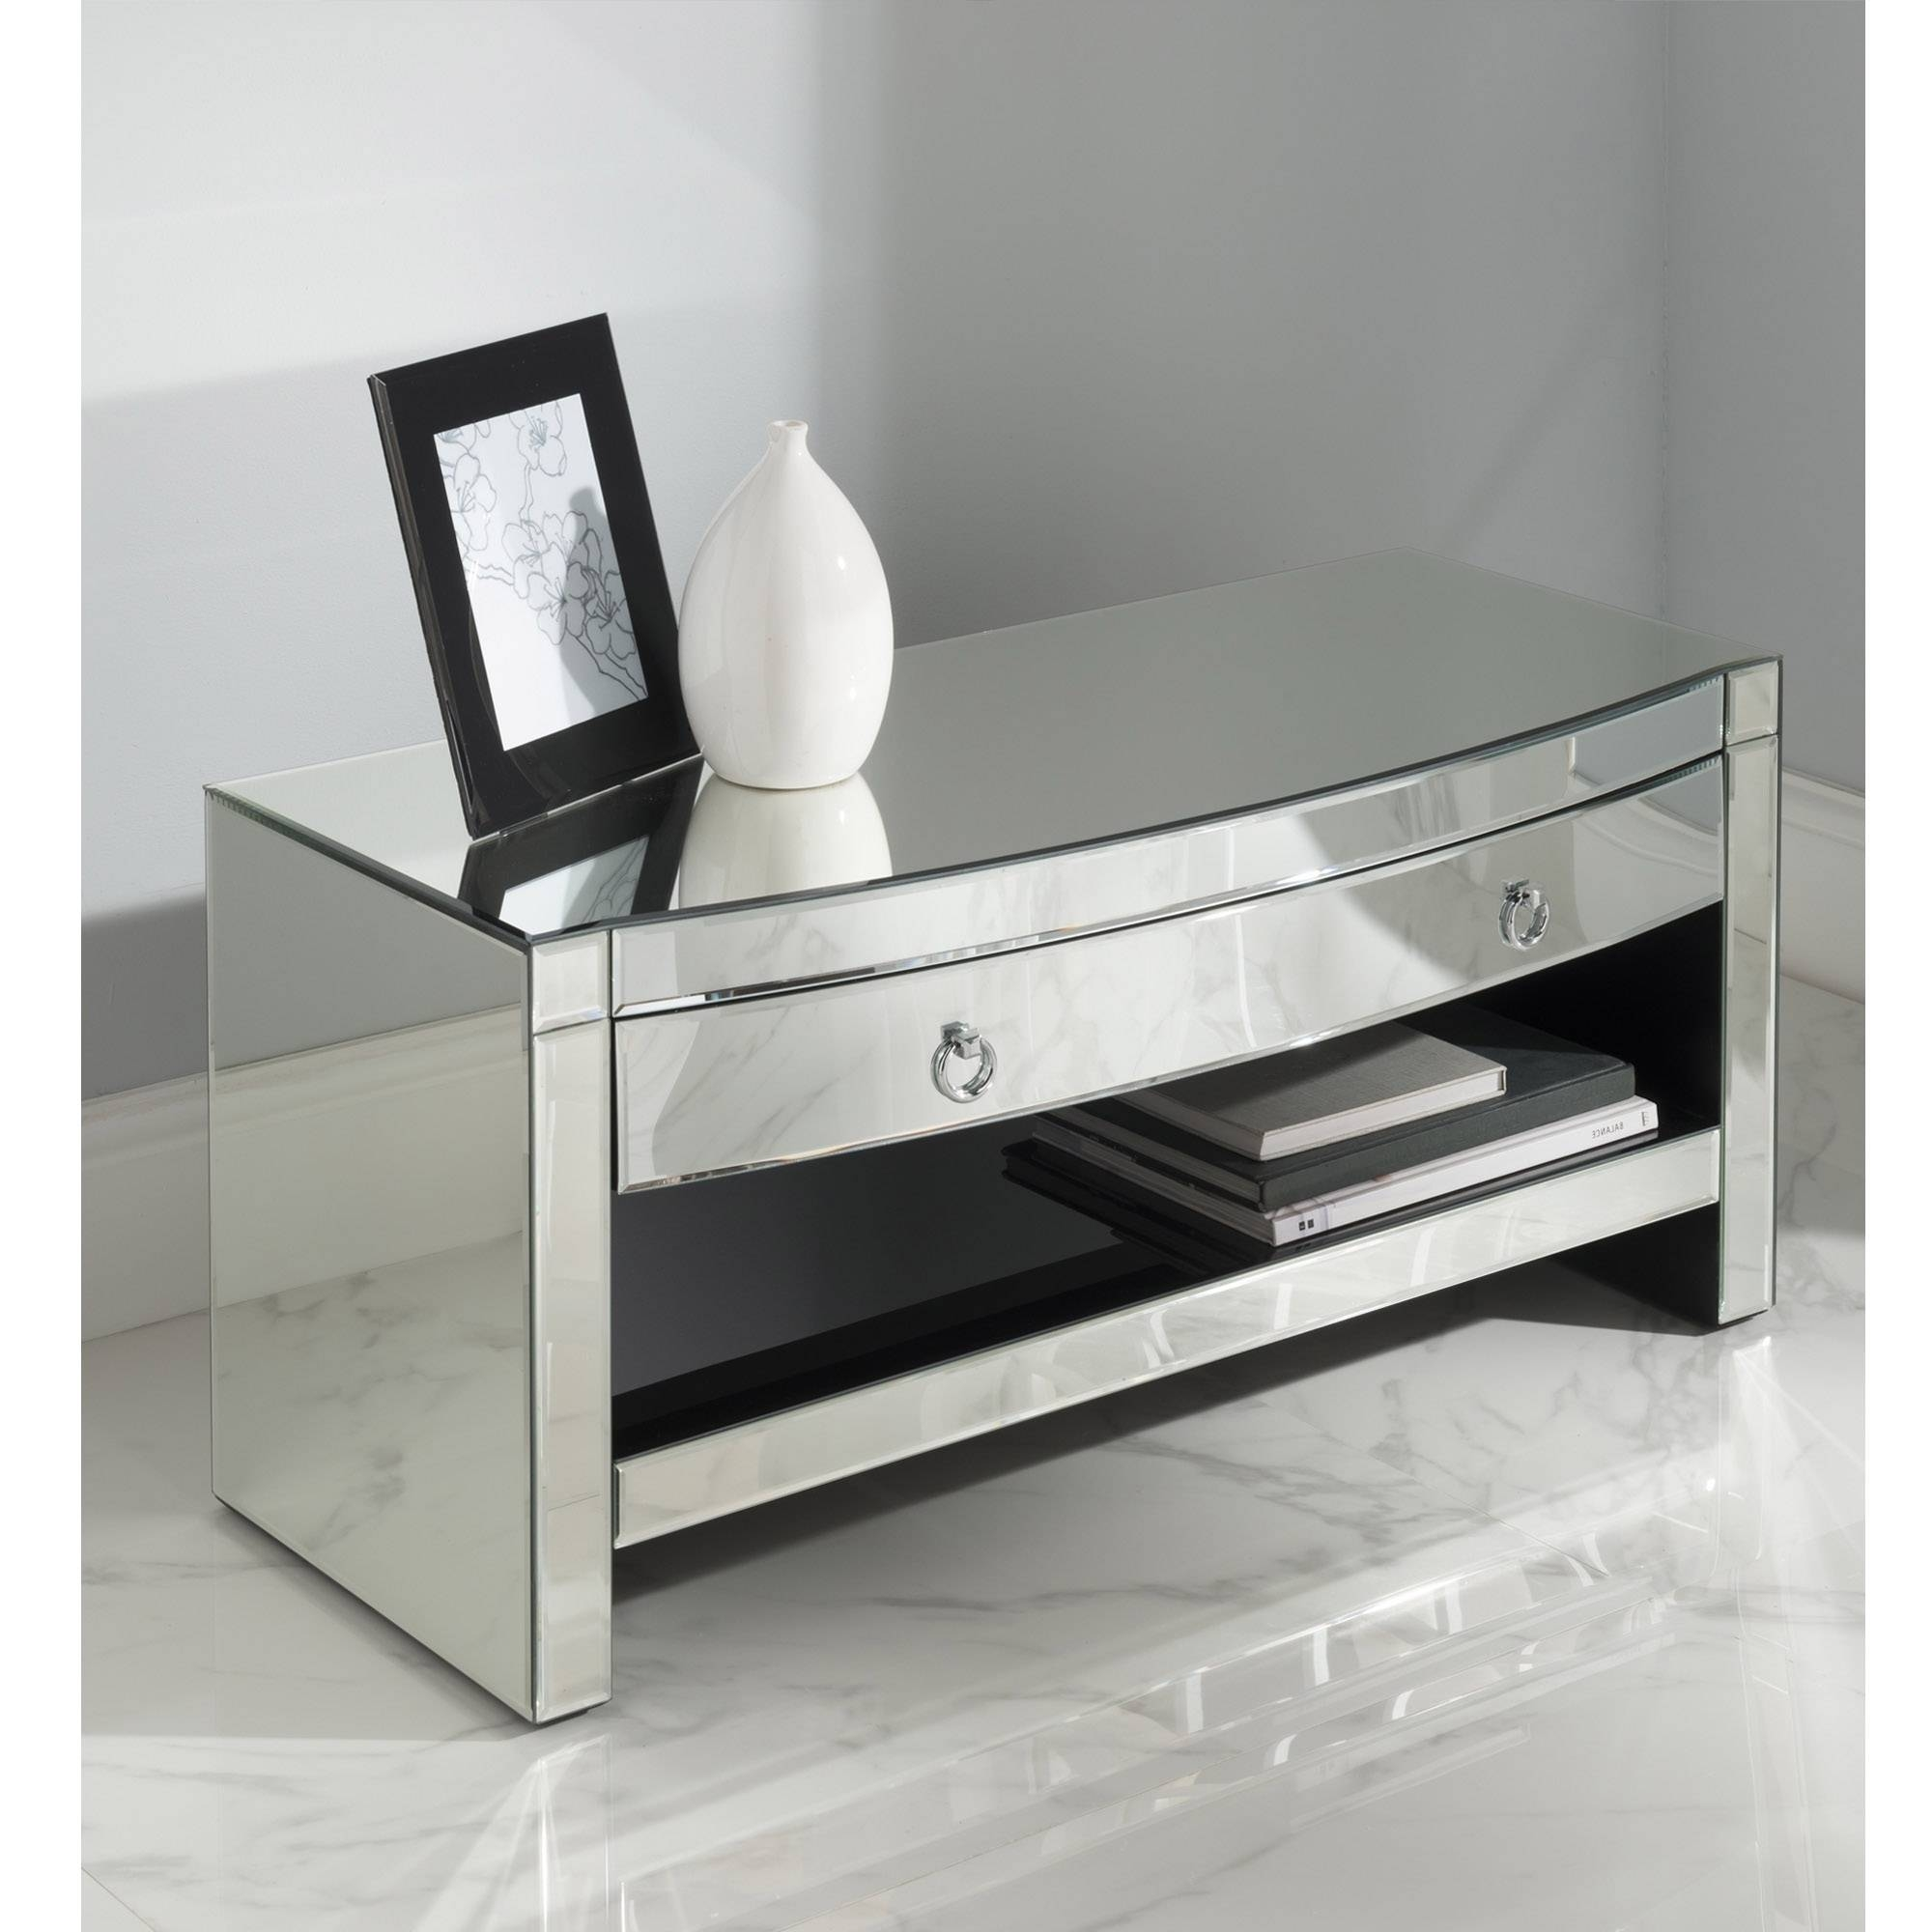 Florence Mirrored Tv Cabinet | Venetian Glass Furniture intended for Mirrored Tv Cabinets (Image 3 of 15)